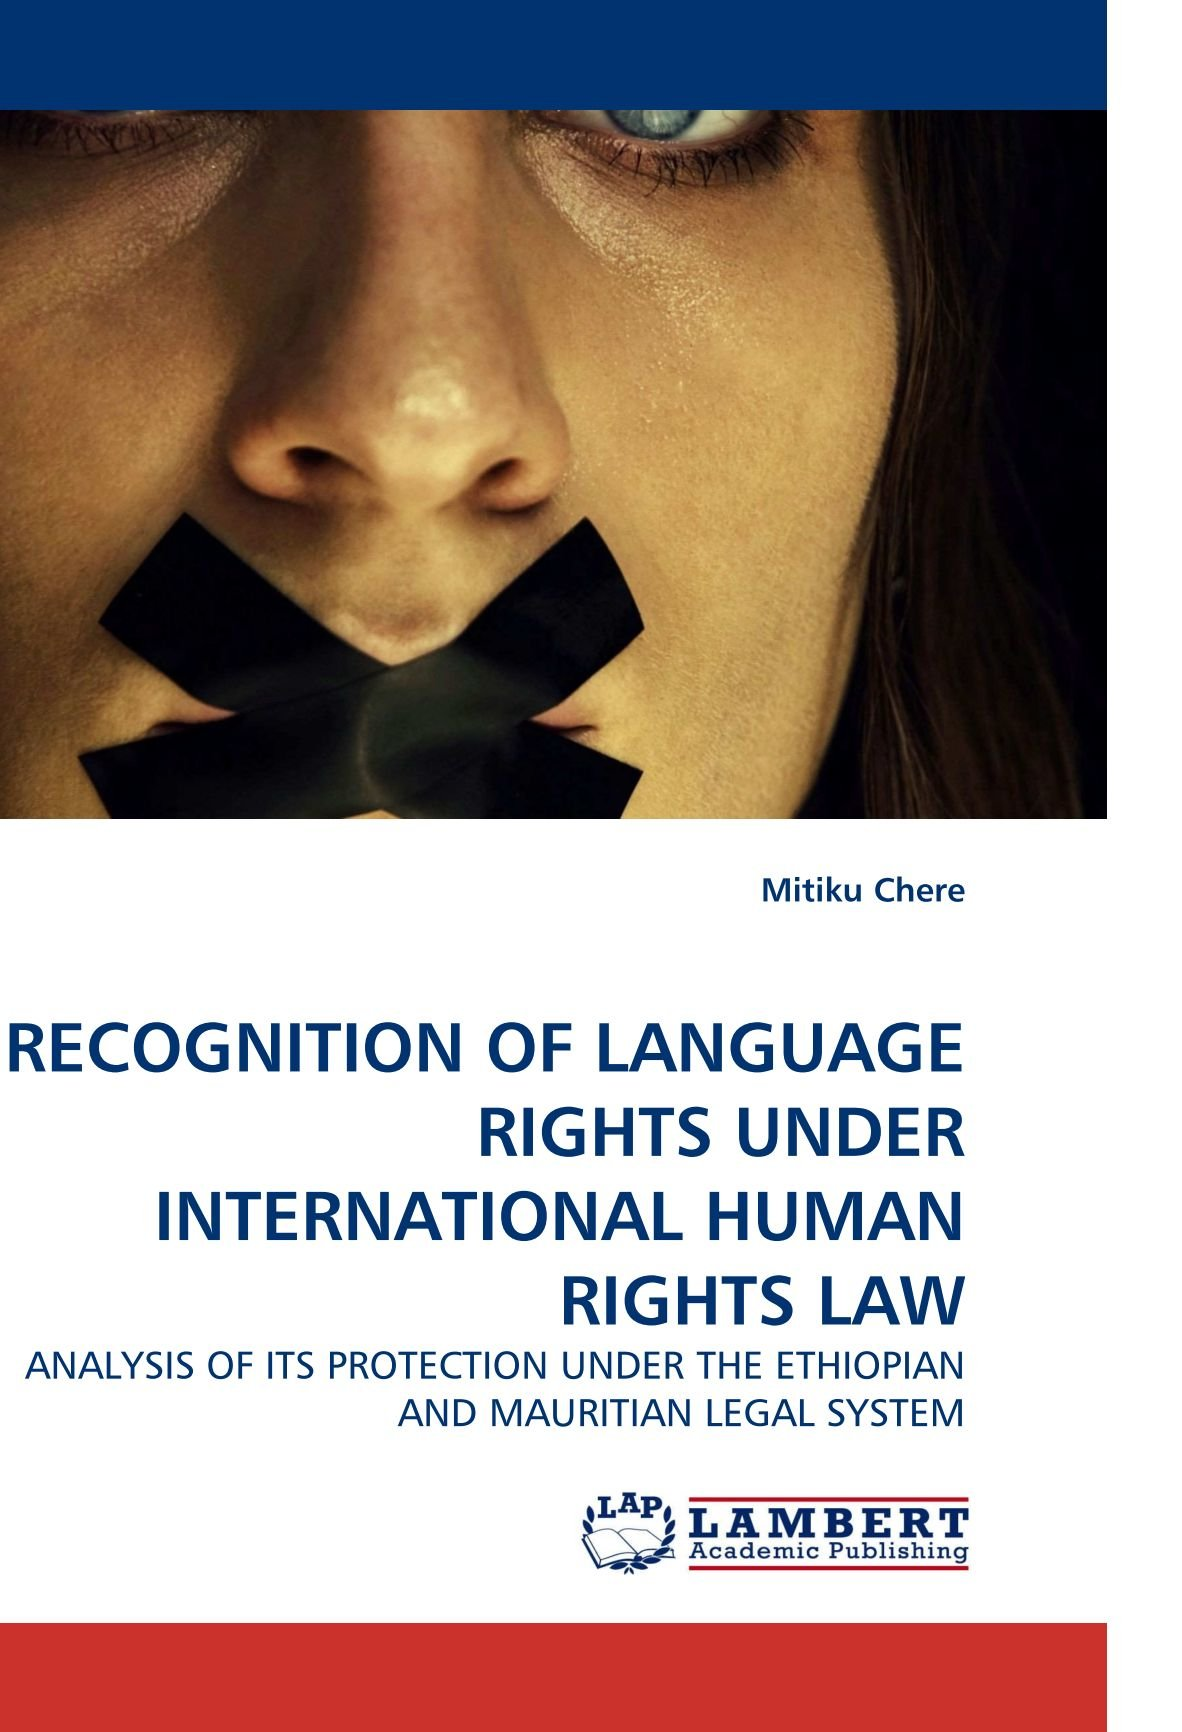 RECOGNITION OF LANGUAGE RIGHTS UNDER INTERNATIONAL HUMAN RIGHTS LAW: ANALYSIS OF ITS PROTECTION  UNDER THE ETHIOPIAN AND MAURITIAN LEGAL SYSTEM